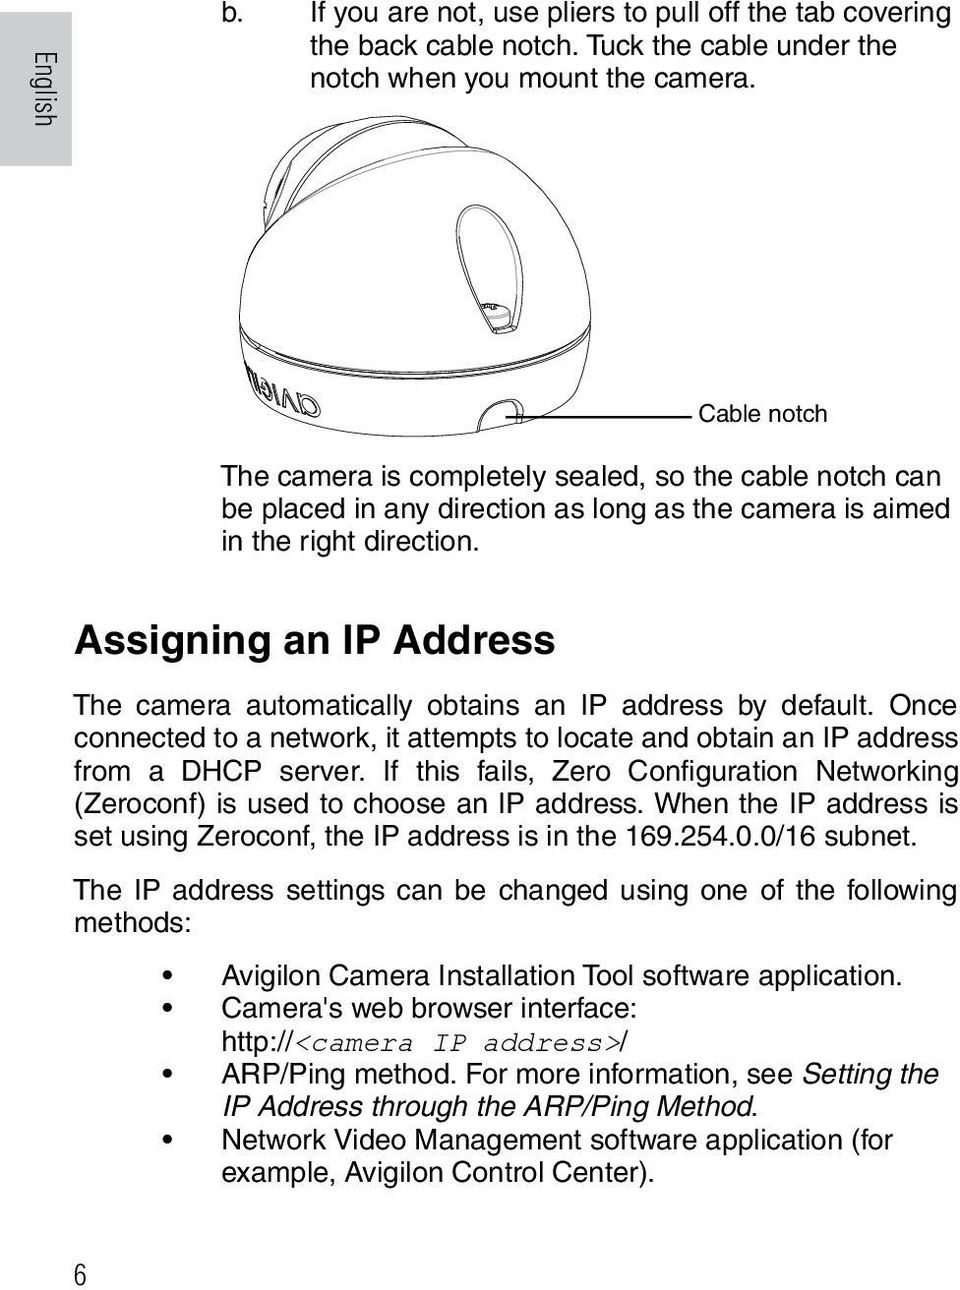 Assigning an IP Address The camera automatically obtains an IP address by default. Once connected to a network, it attempts to locate and obtain an IP address from a DHCP server.